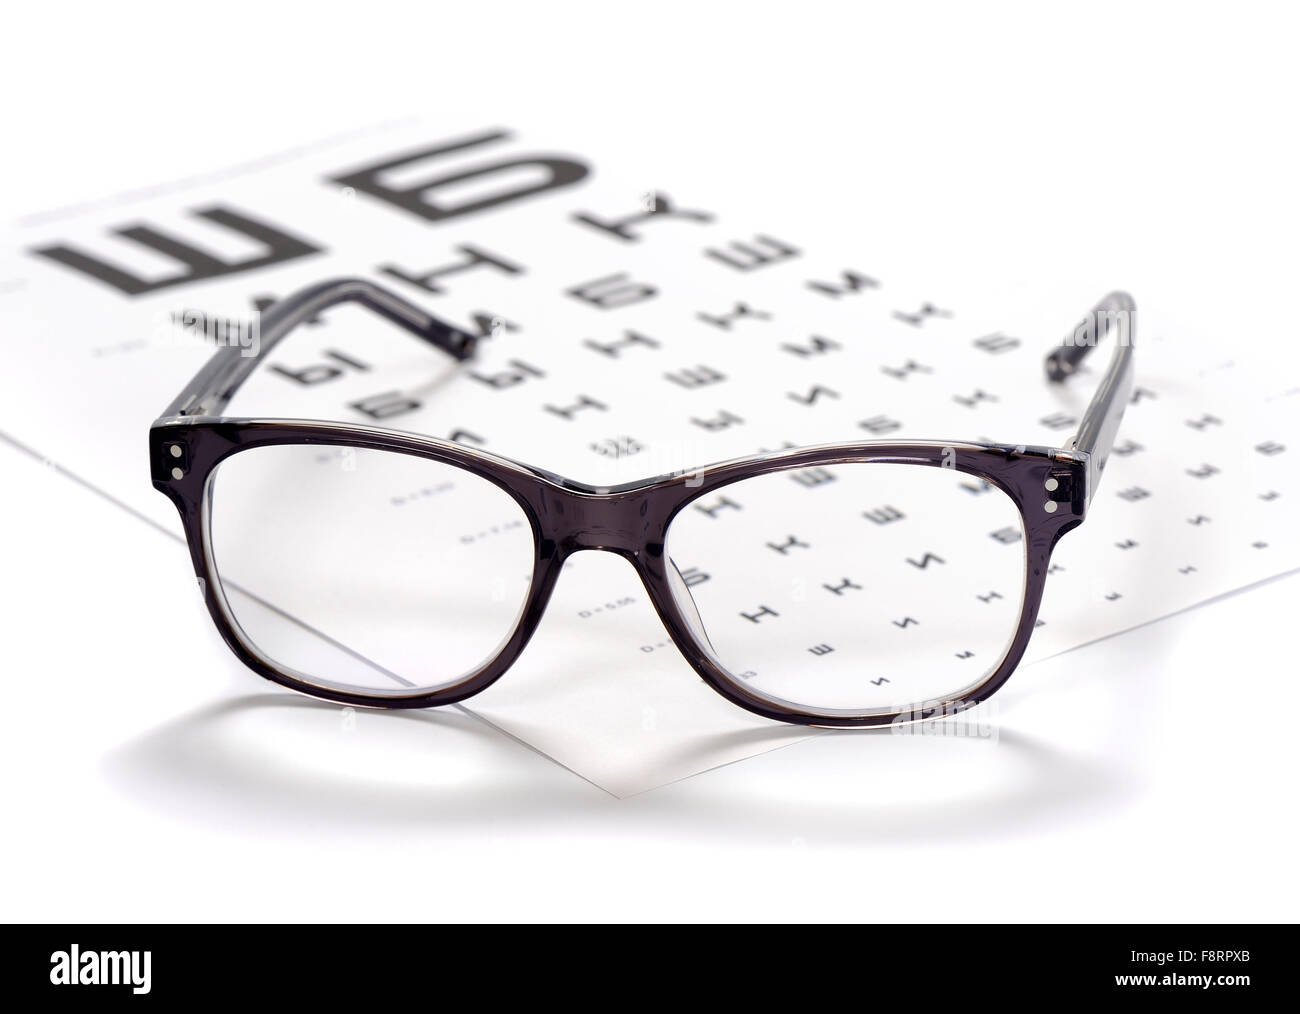 Reading Eyeglasses And Eye Chart Close Up On A Light Background